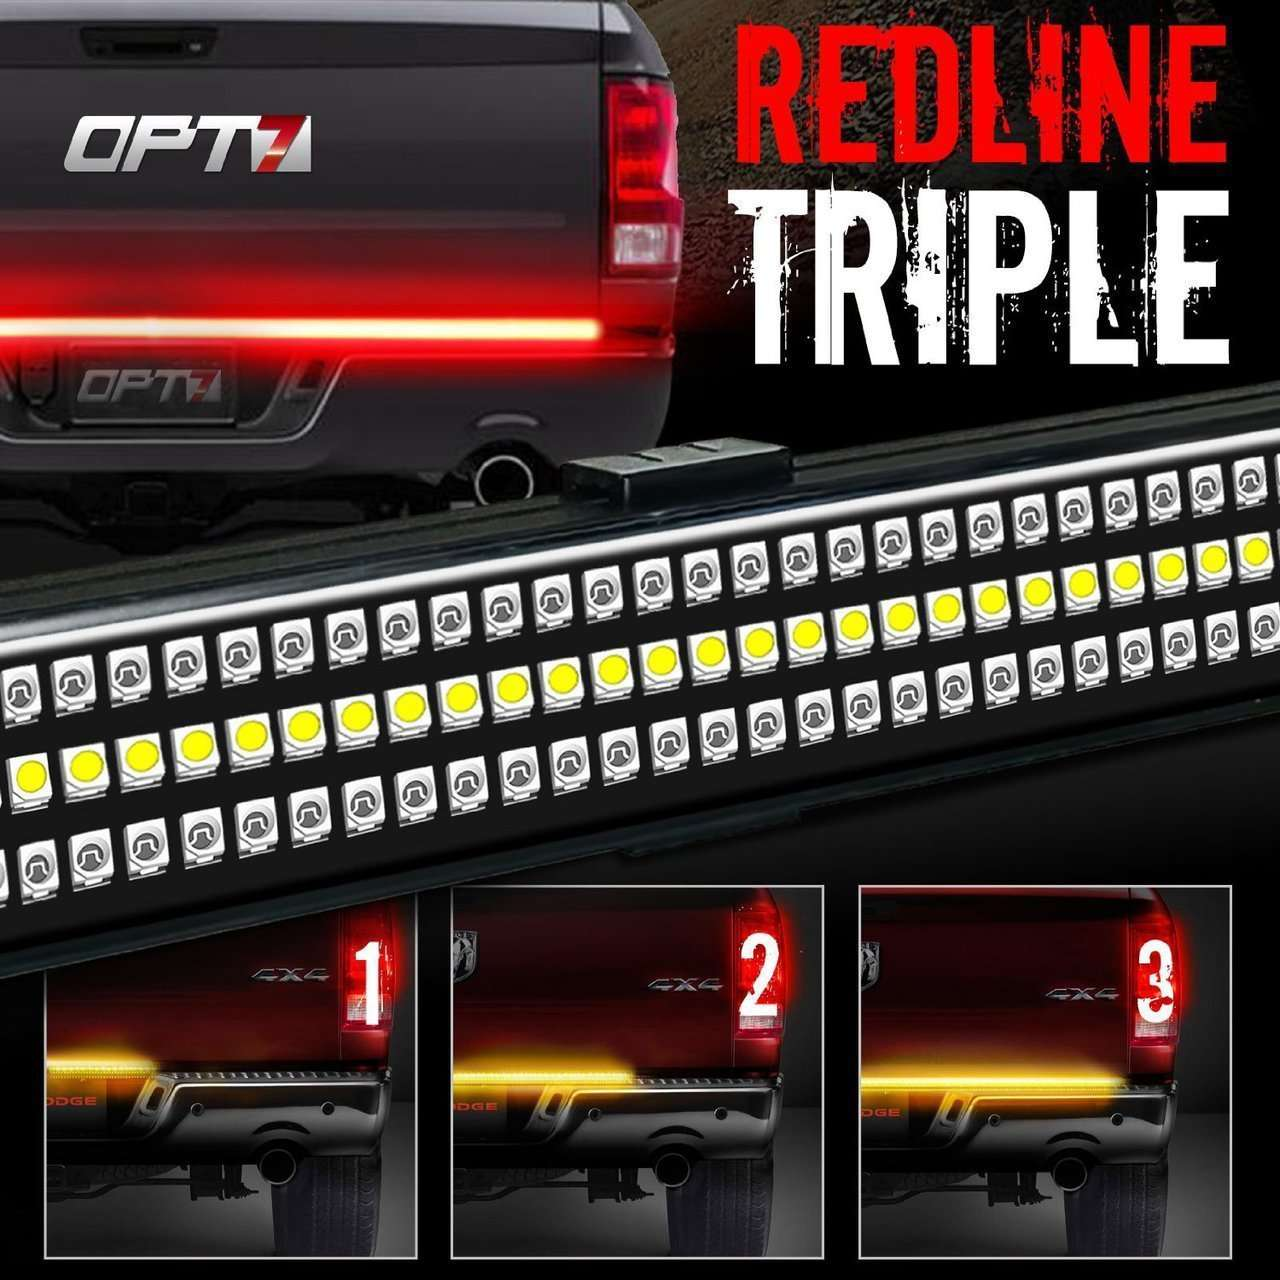 REDLINE TRIPLE LED TAILGATE BRAKE LIGHT BAR WITH REVERSE & SEQUENTIAL TURN SIGNALS